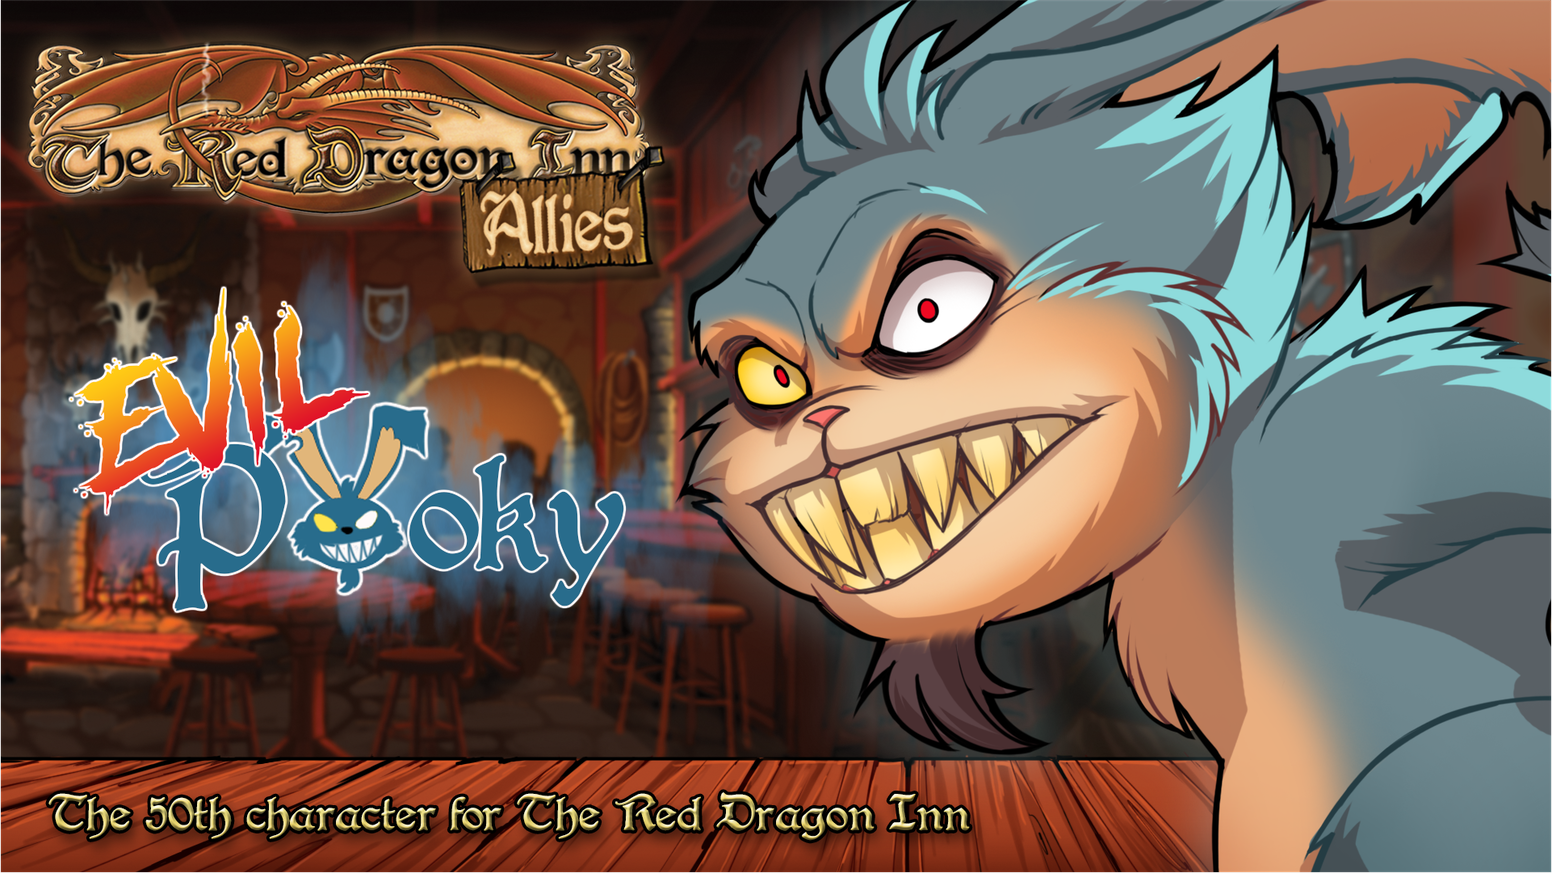 Pooky's evil doppelganger invades the tavern!